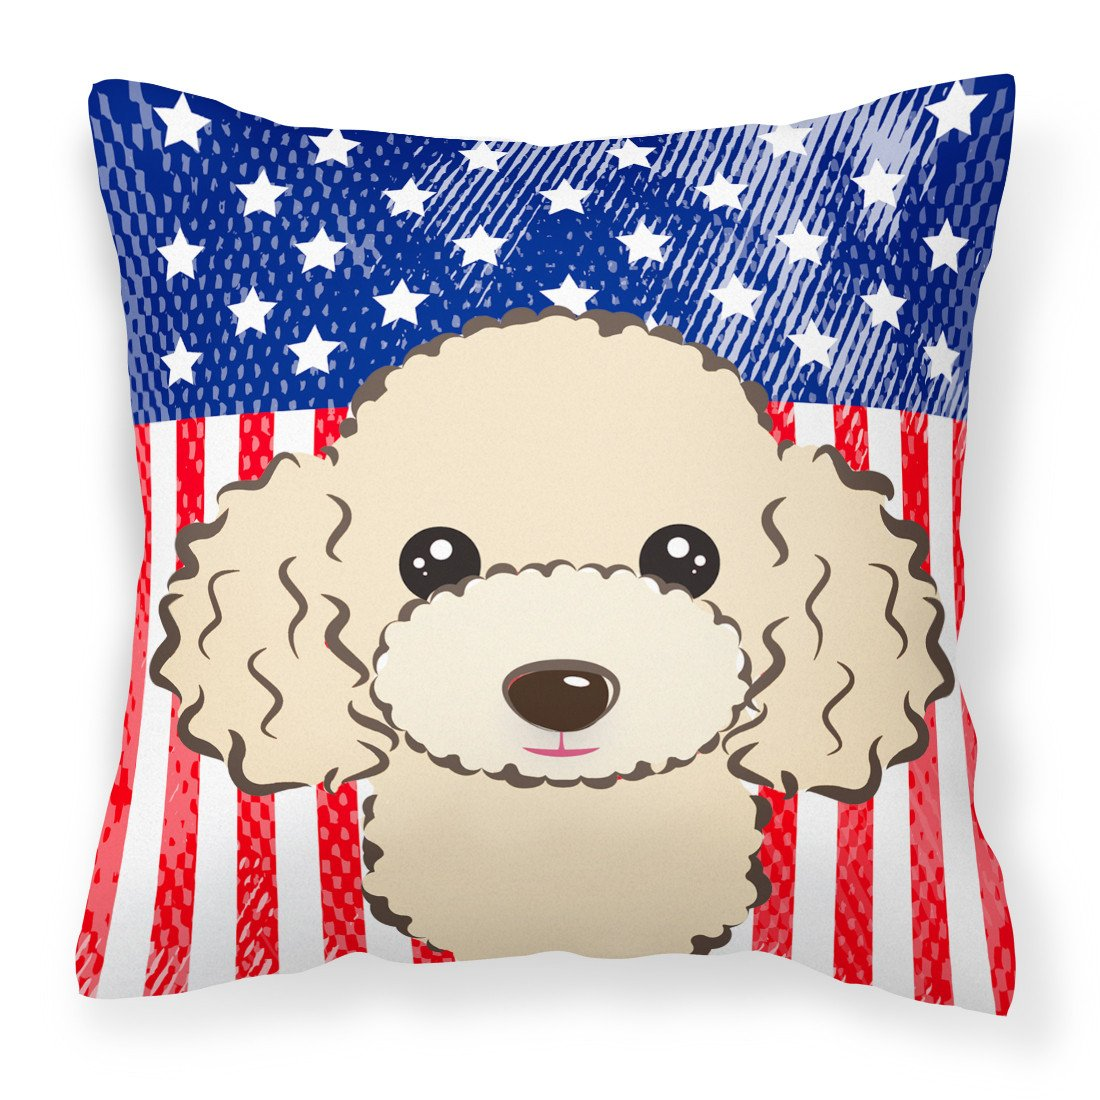 American Flag and Buff Poodle Fabric Decorative Pillow BB2188PW1414 - the-store.com